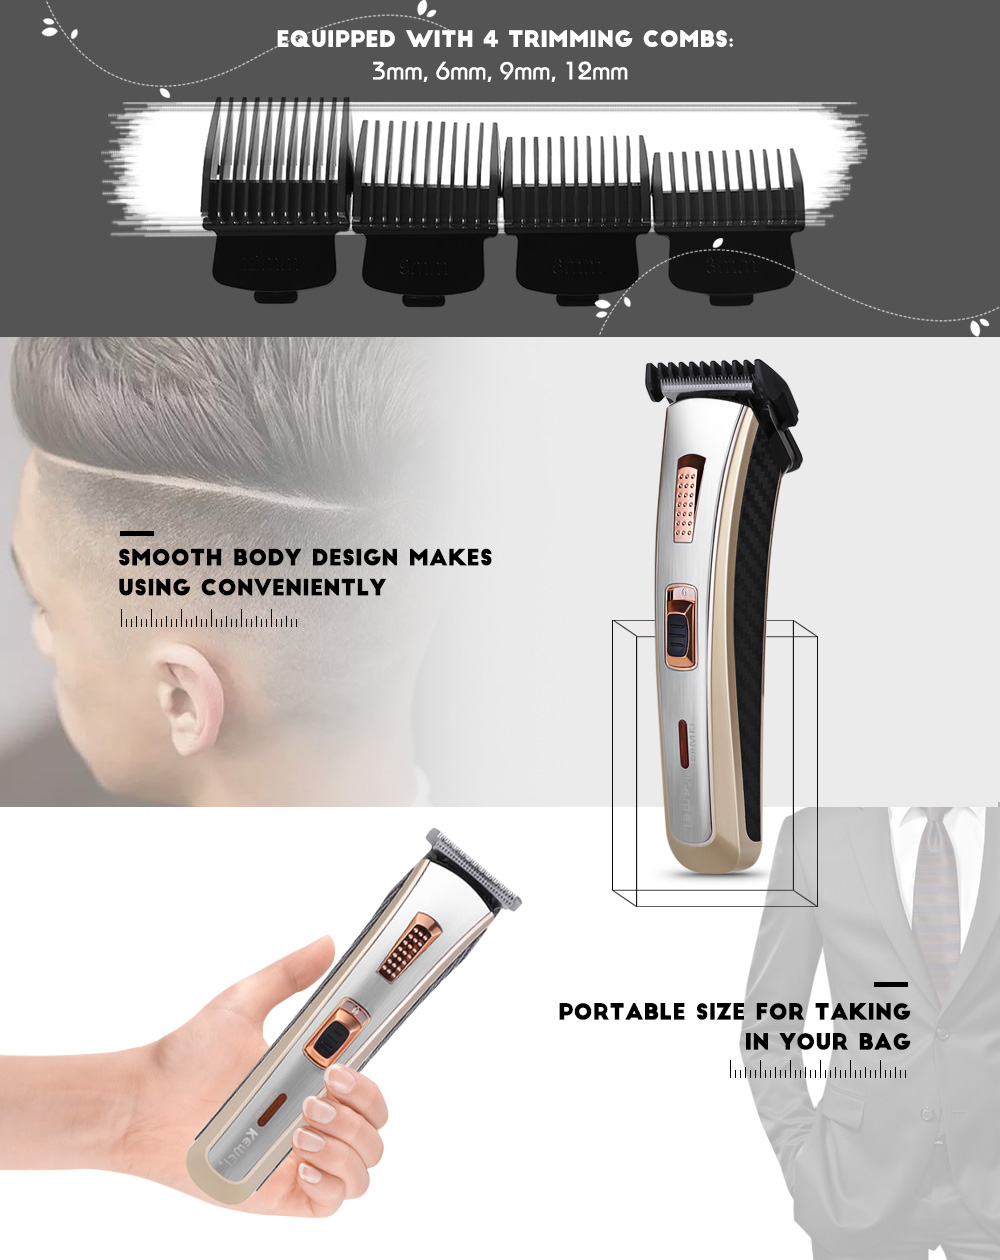 Kemei Km 5117 Professional Haircutting Clipper Rechargeable Electric